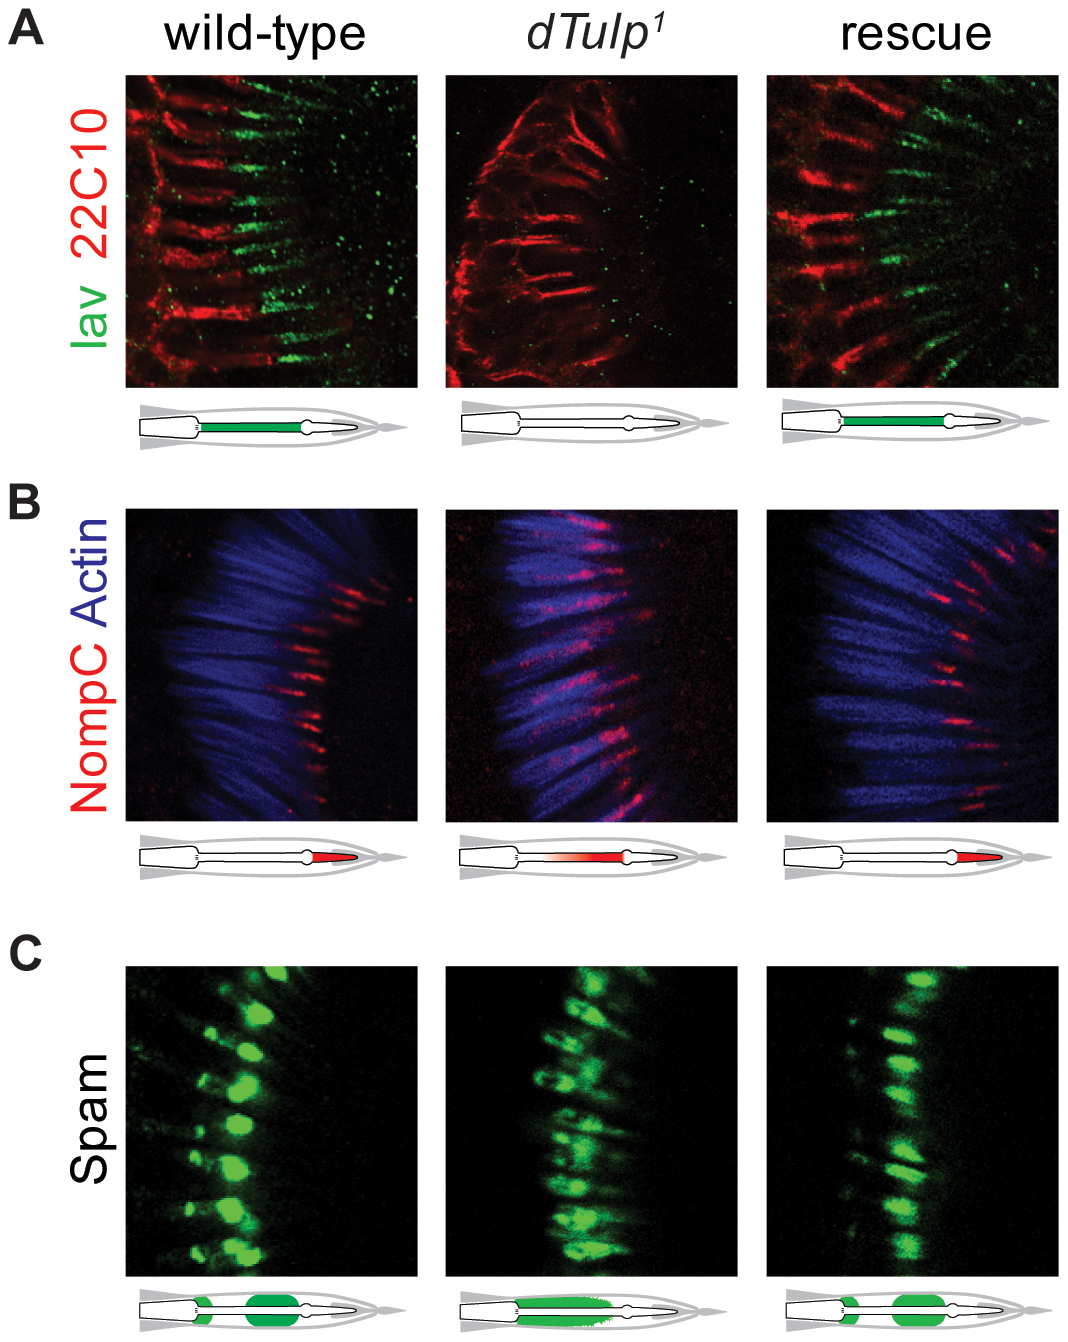 Mislocalization of Iav, NompC and Spam in the <i>dTulp</i> mutant.